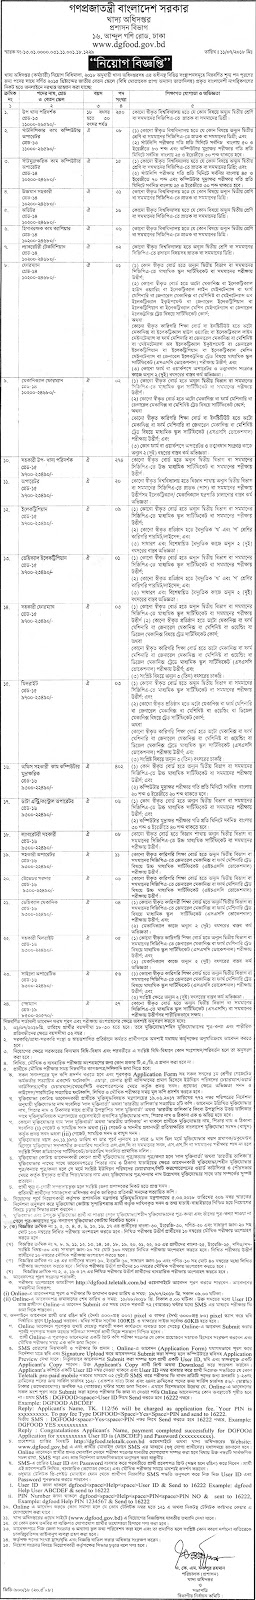 Directorate General of Food Job Circular 2018